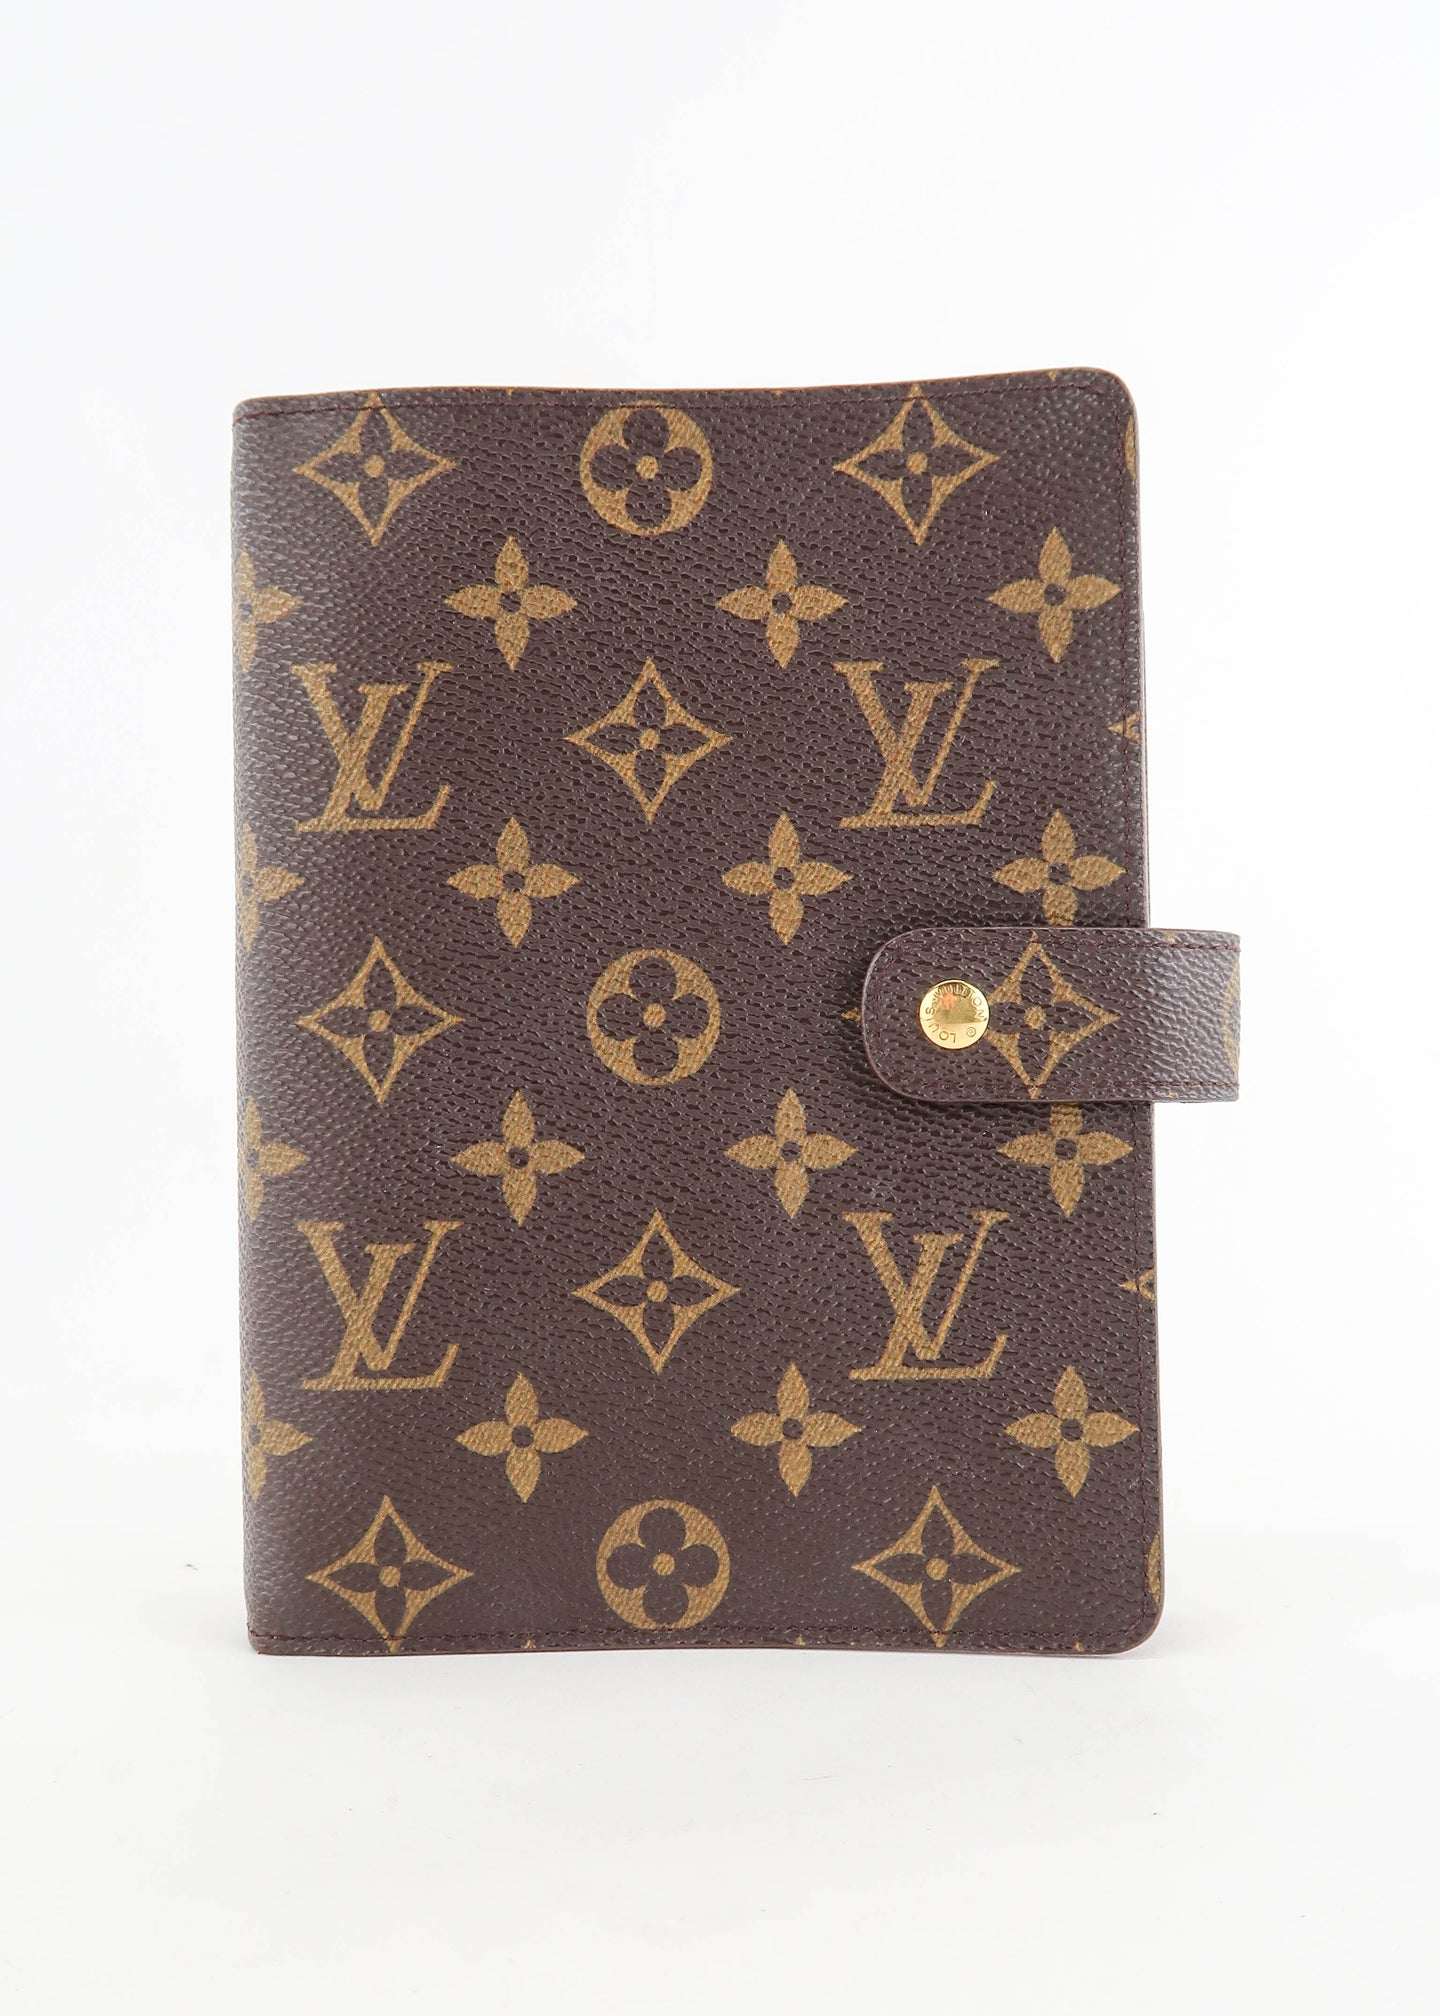 Louis Vuitton Monogram Agenda MM